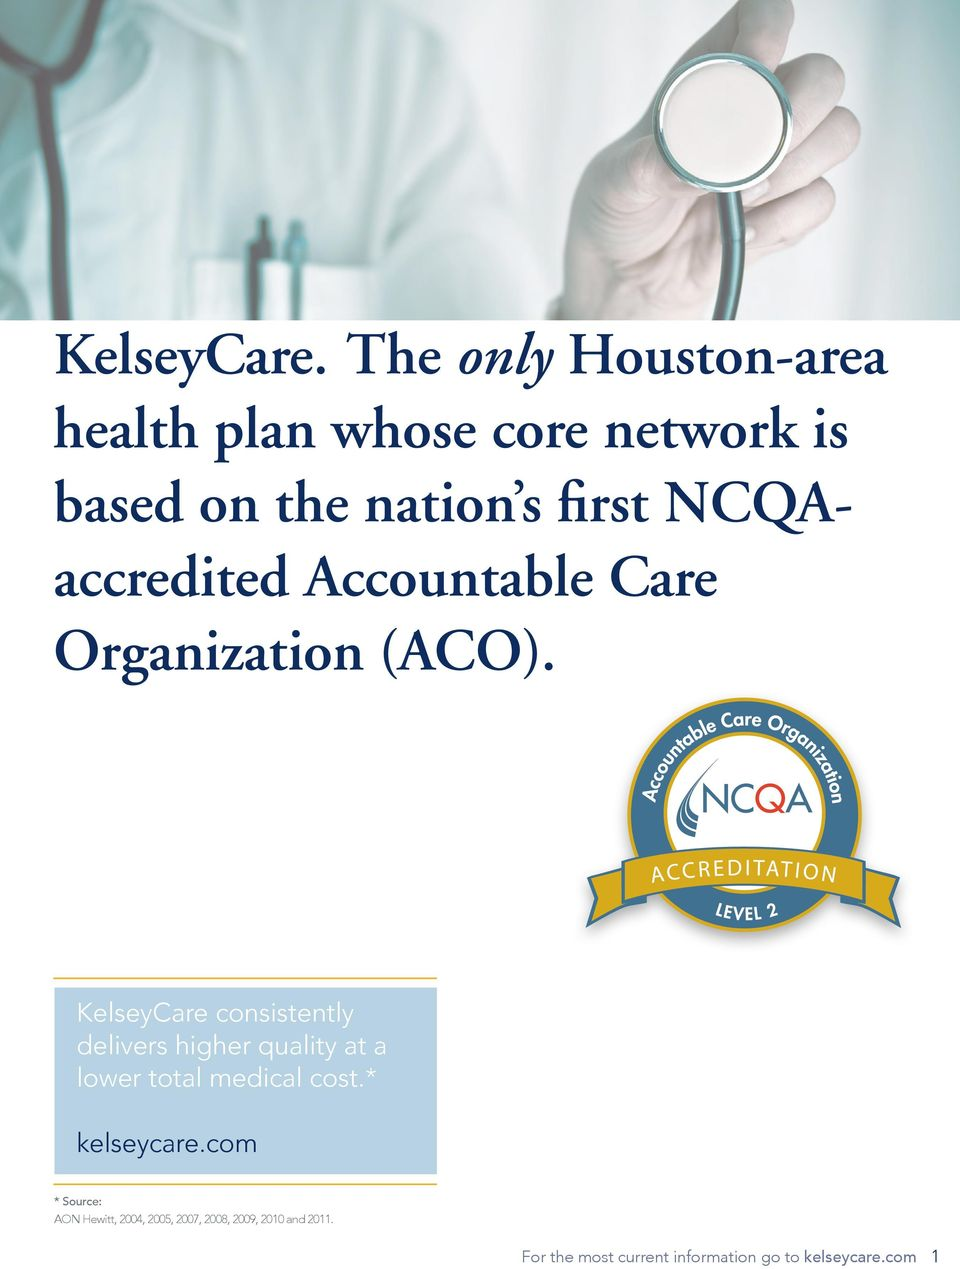 NCQAaccredited Accountable Care Organization (ACO).